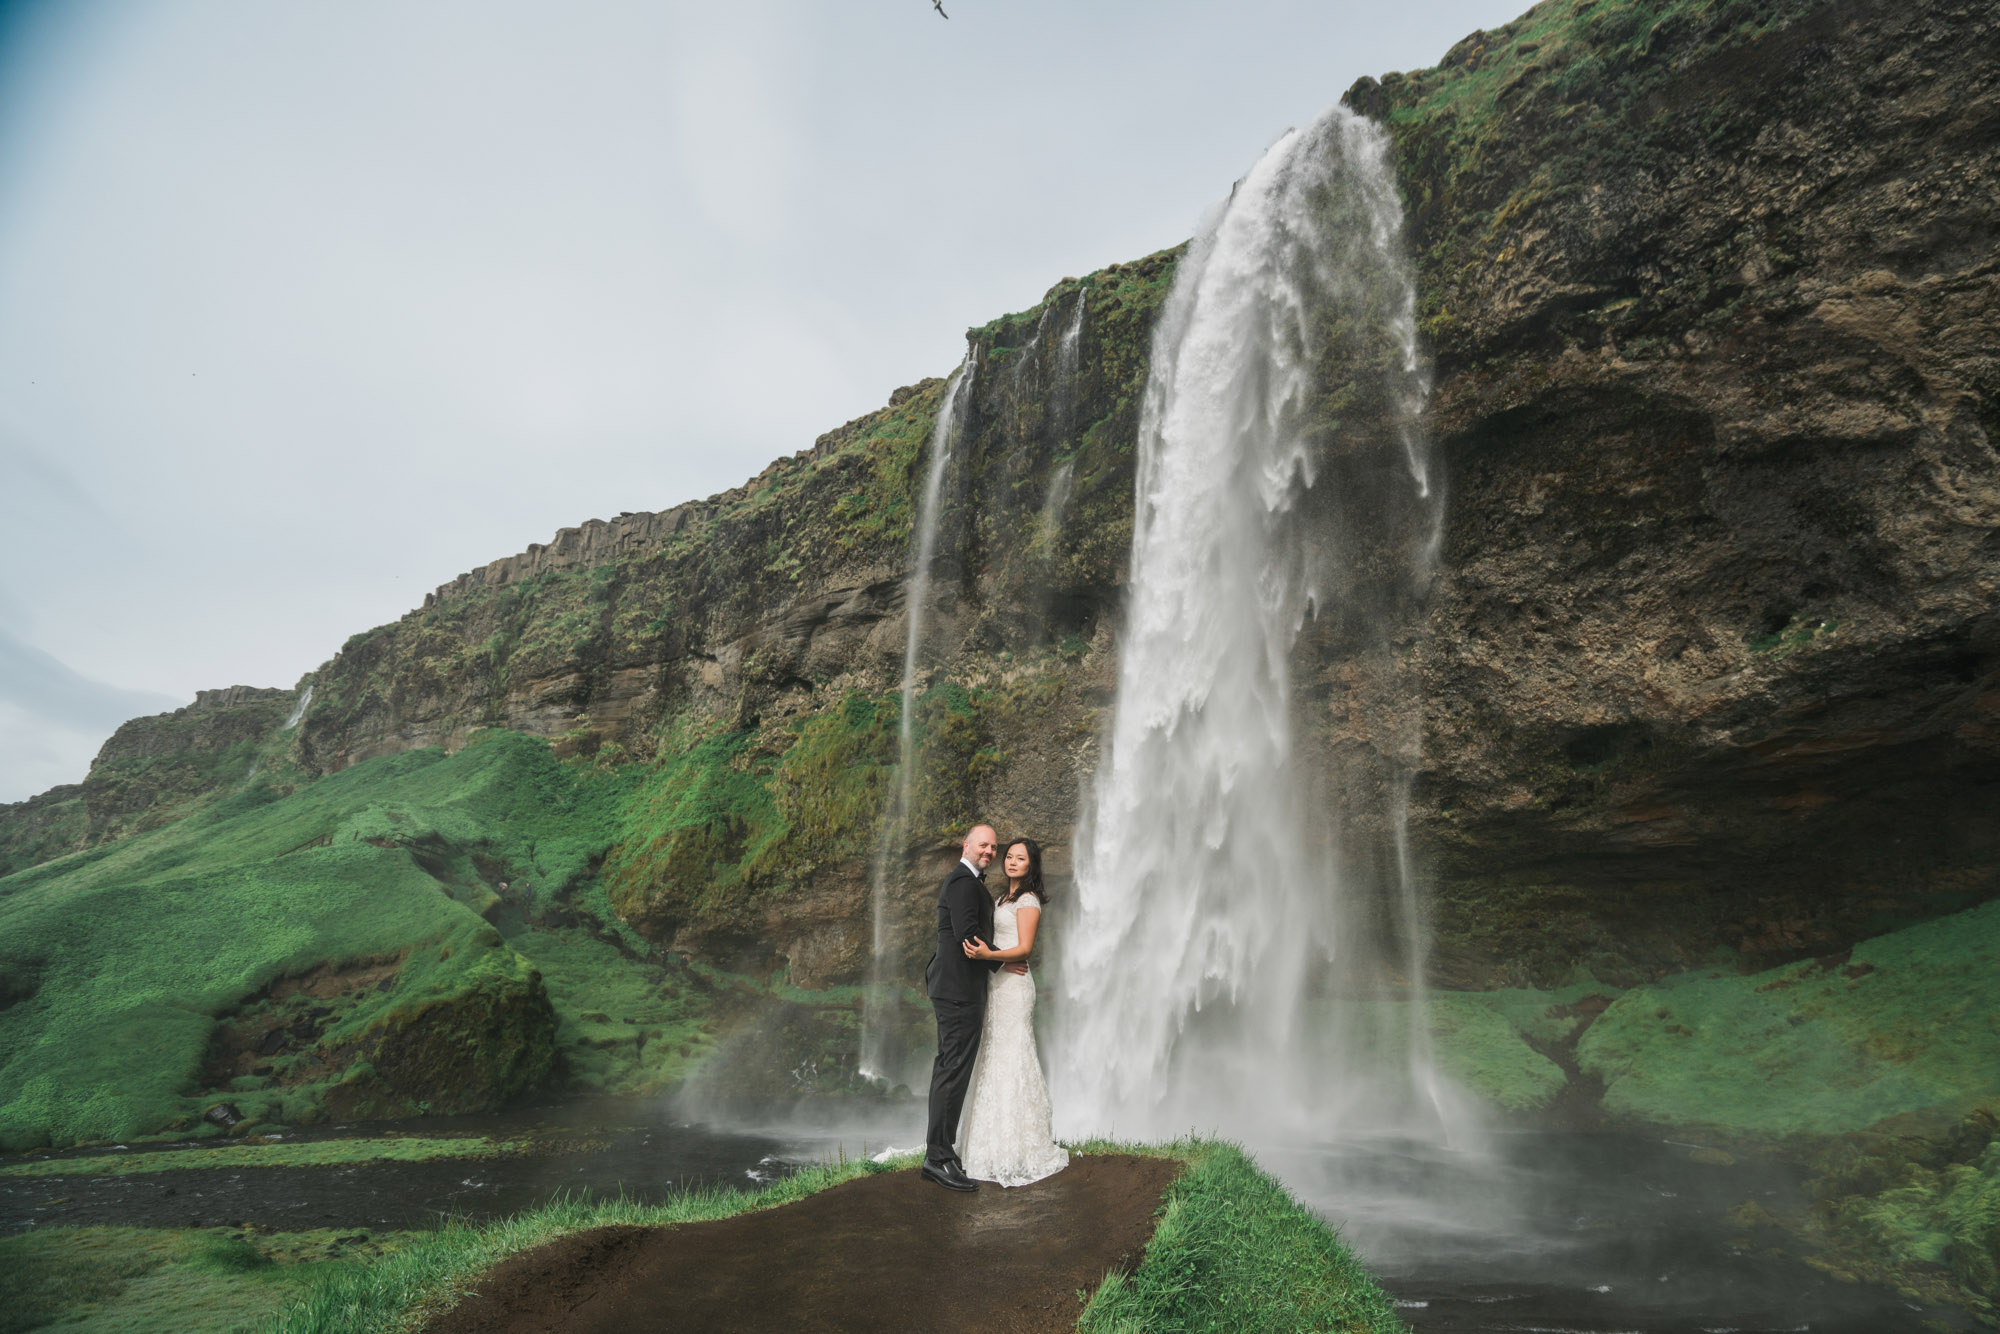 Phoebe Amp Dave Iceland Wedding Elopement Photos Skogafoss Amp Seljalandsfoss